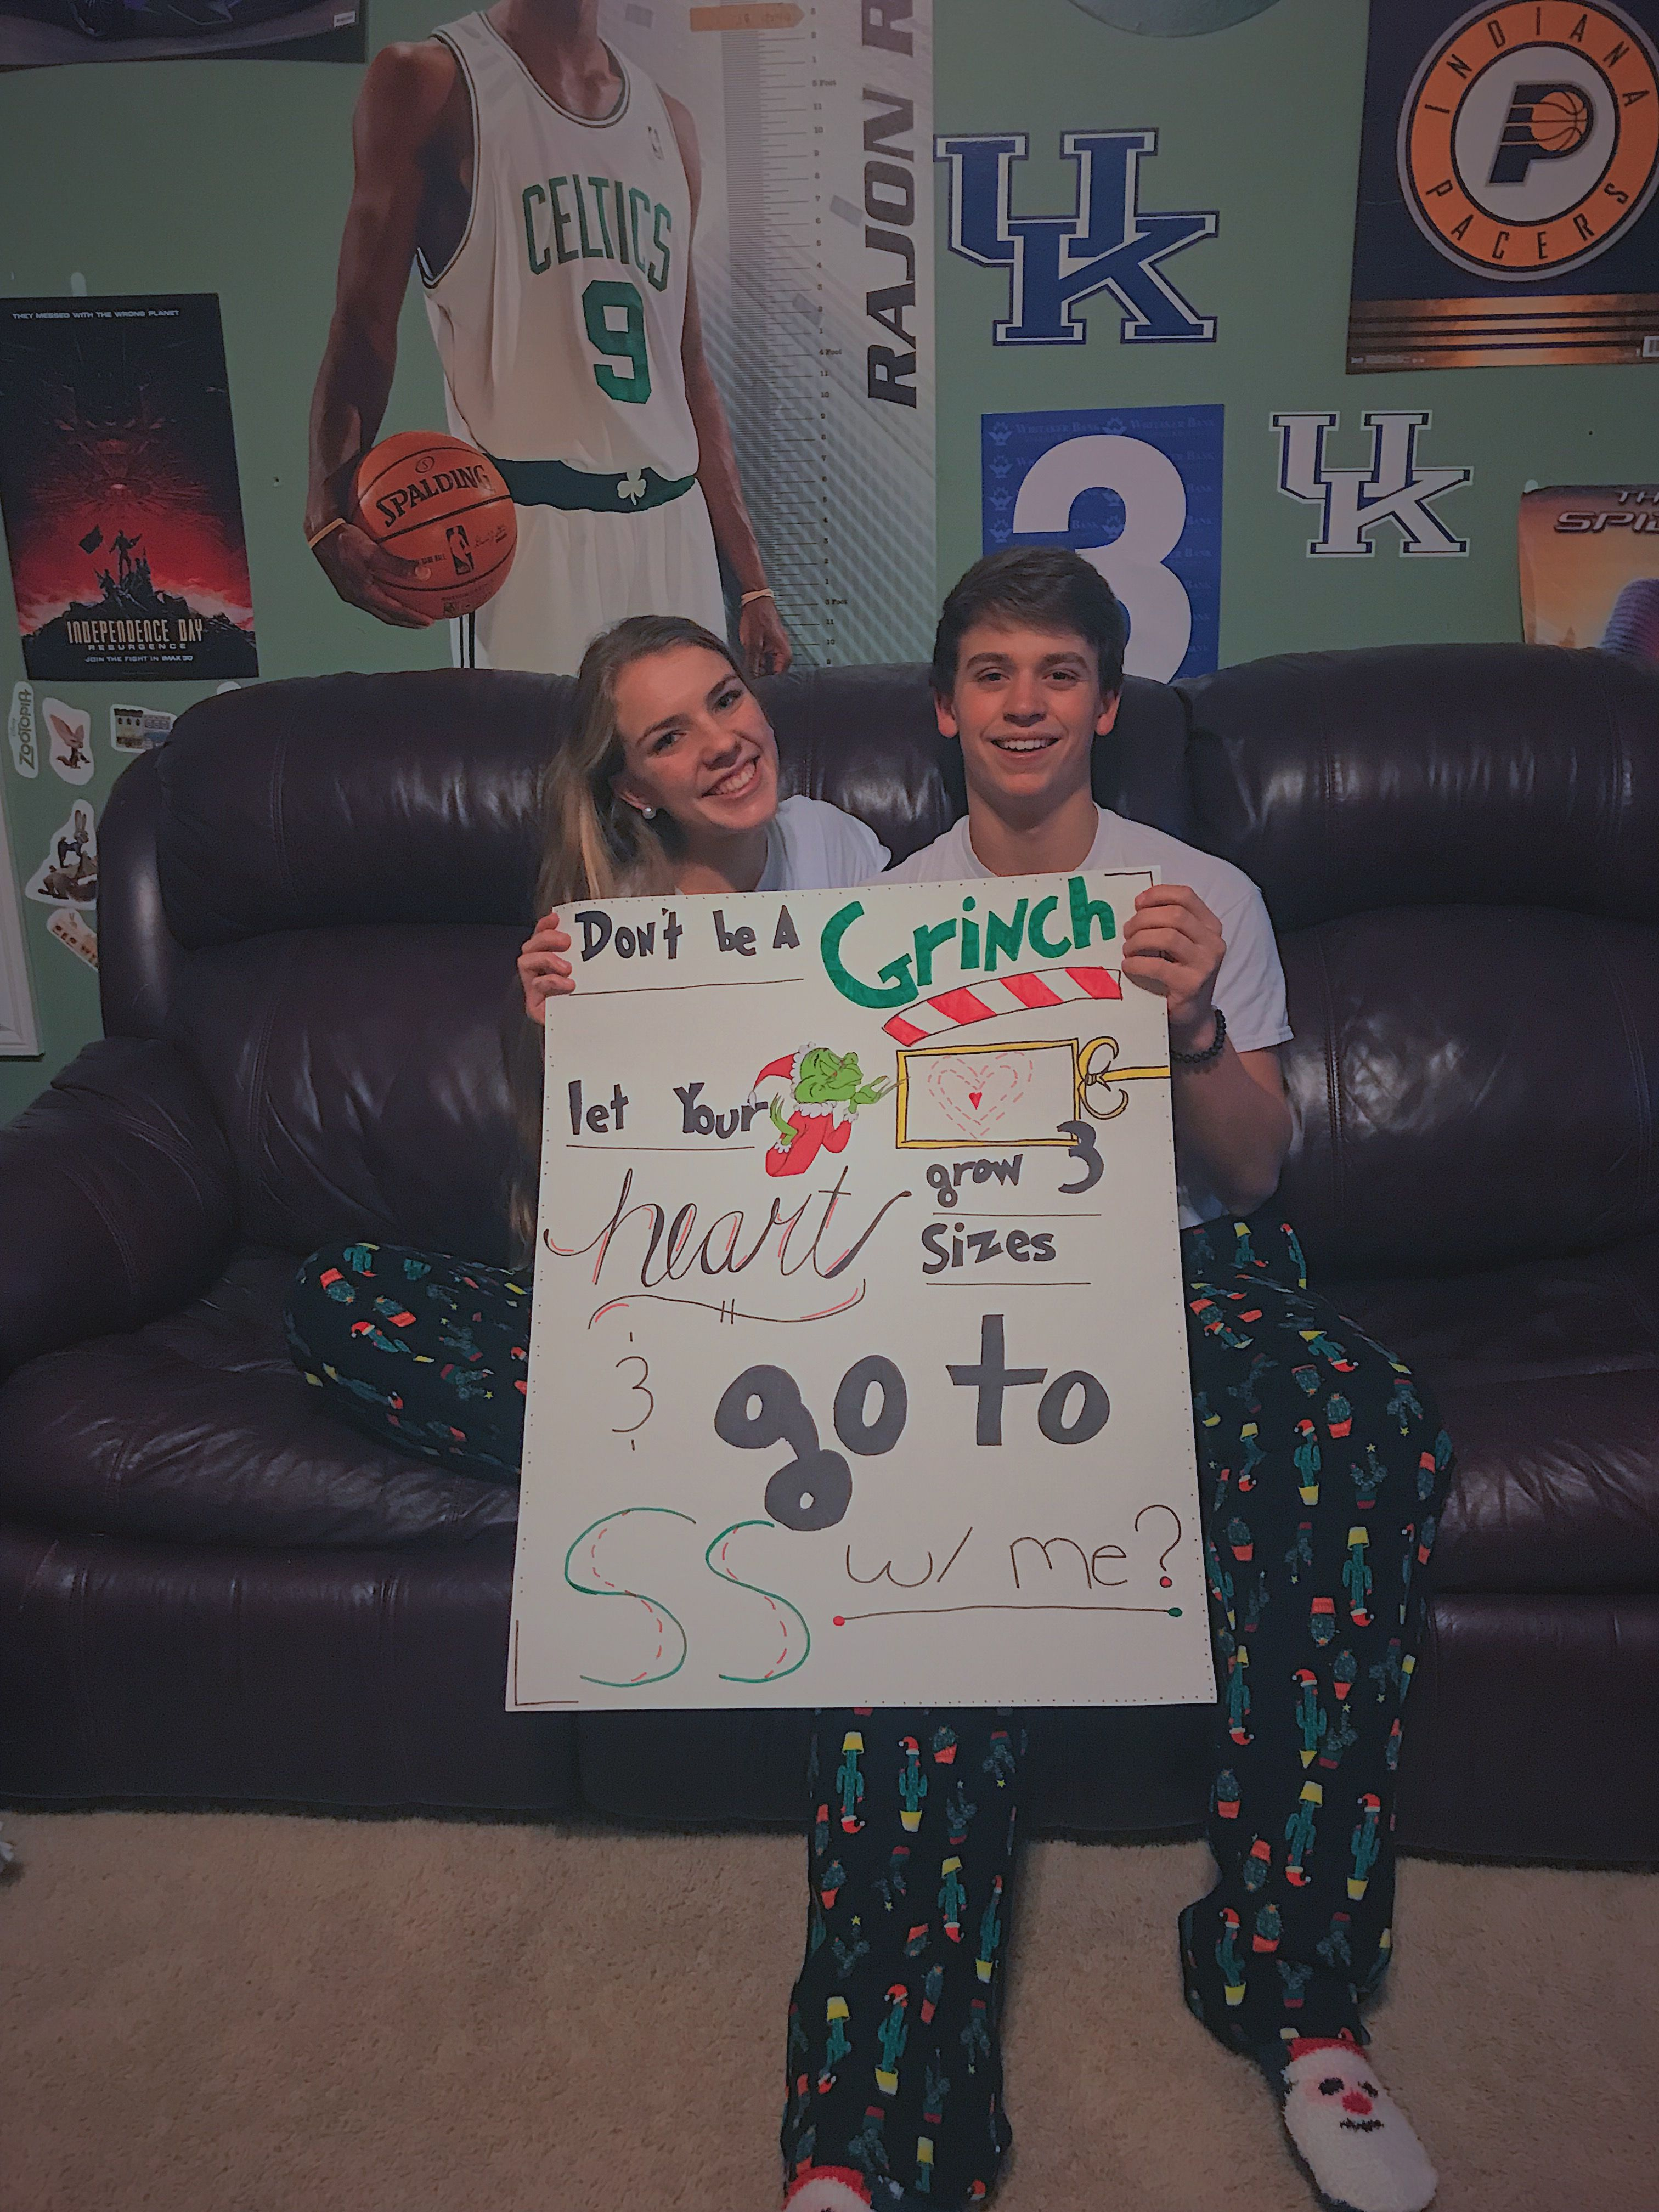 Christmas Homecoming Proposal.The Grinch Promposal Grinch Prom Promposal